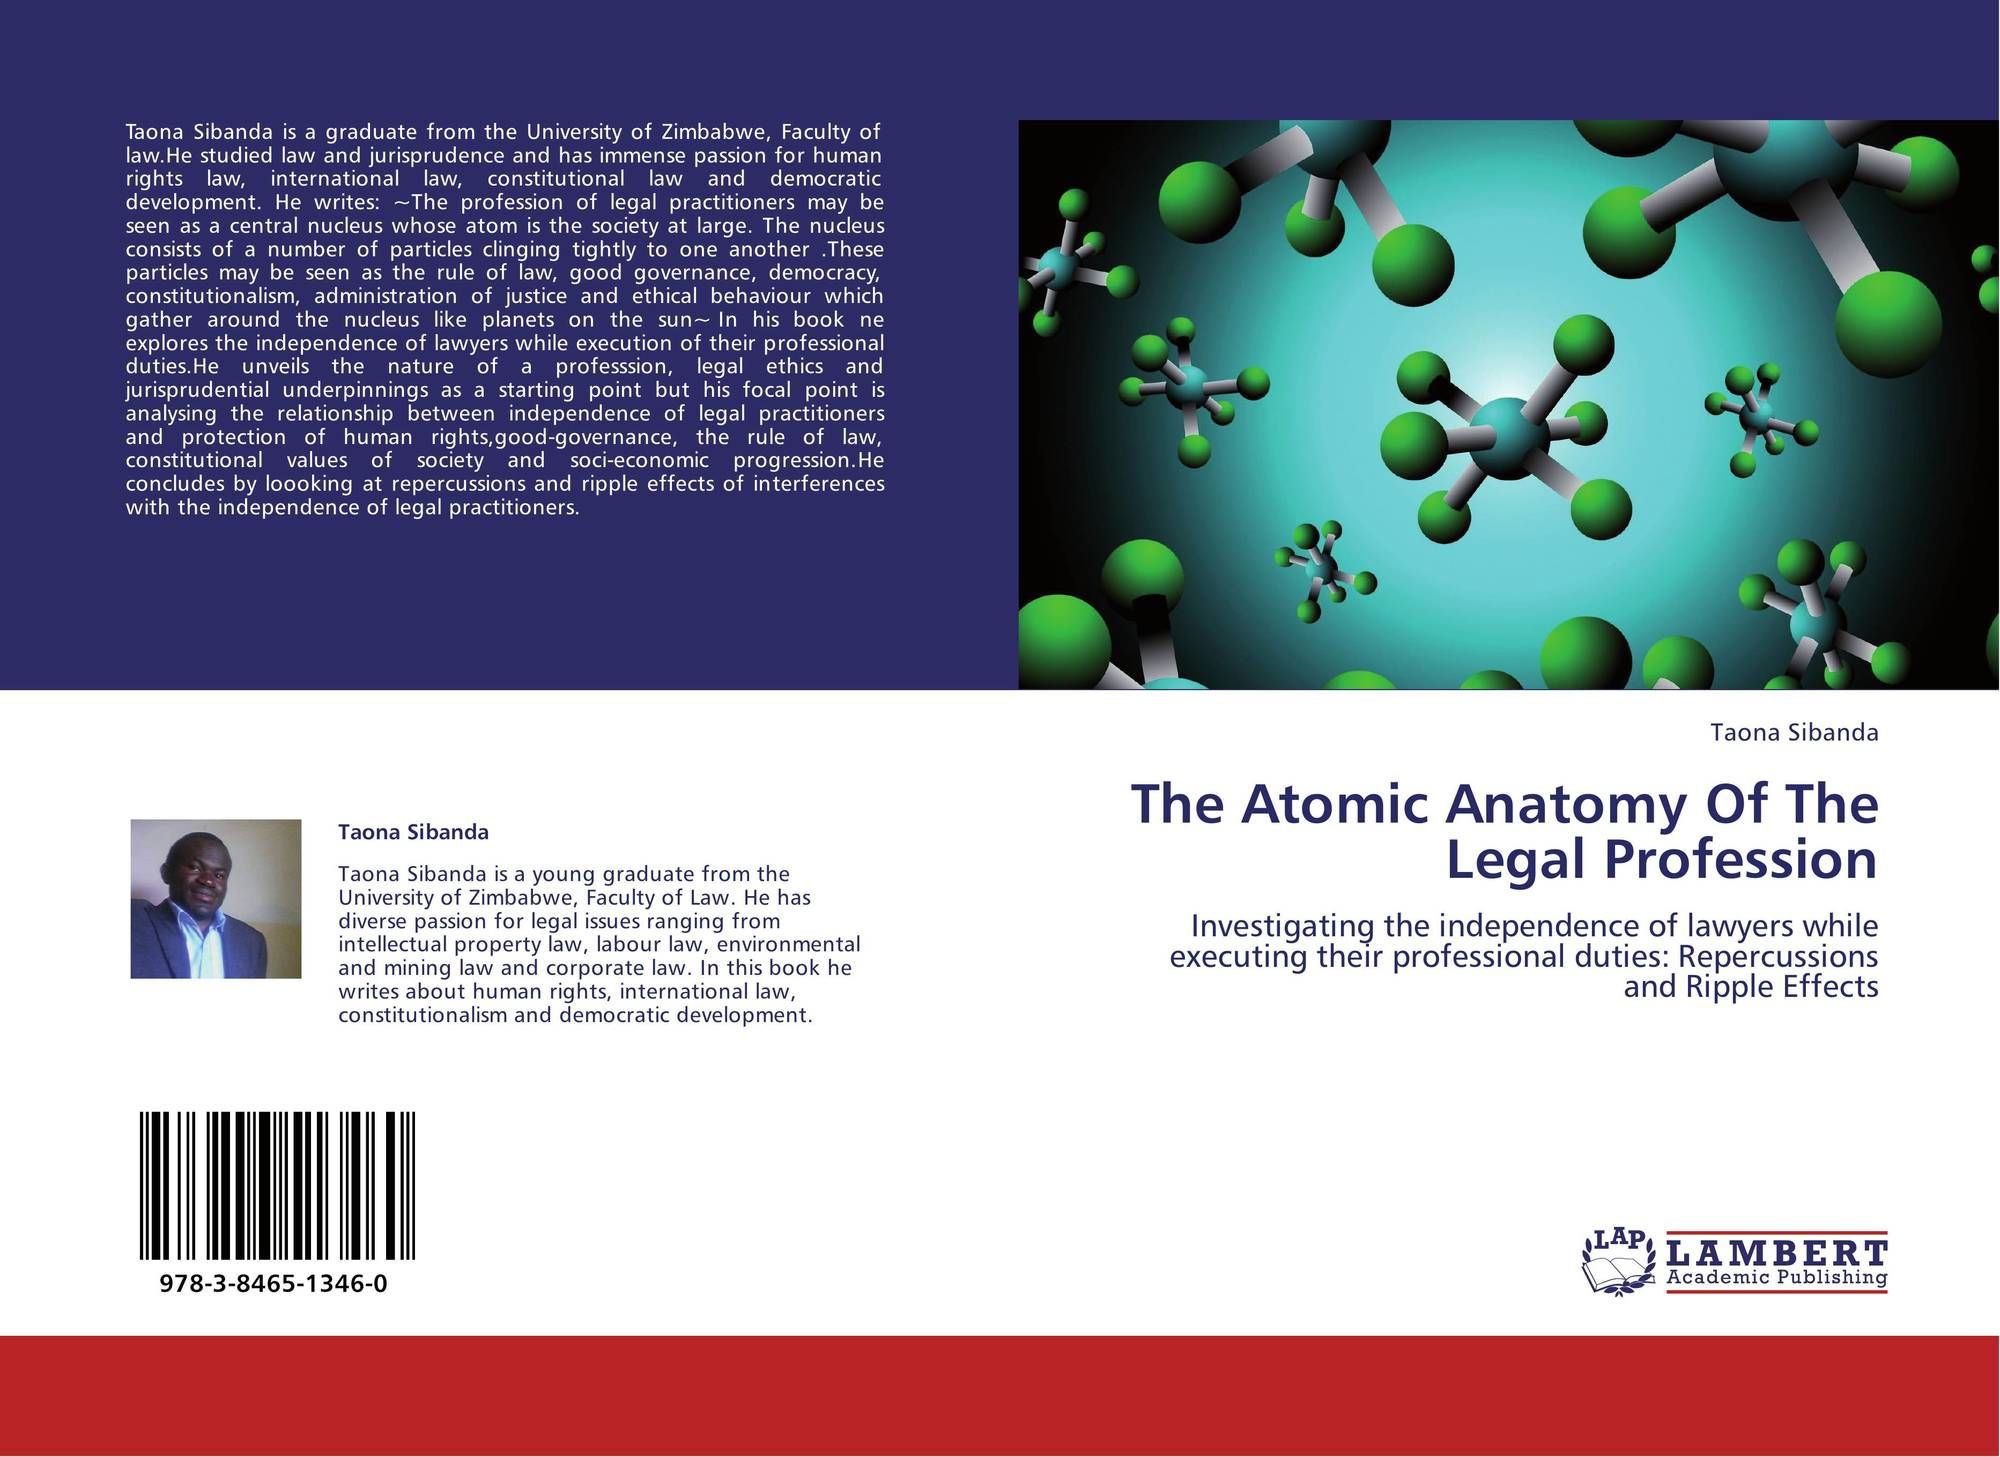 The Atomic Anatomy Of The Legal Profession, 978-3-8465-1346-0 ...